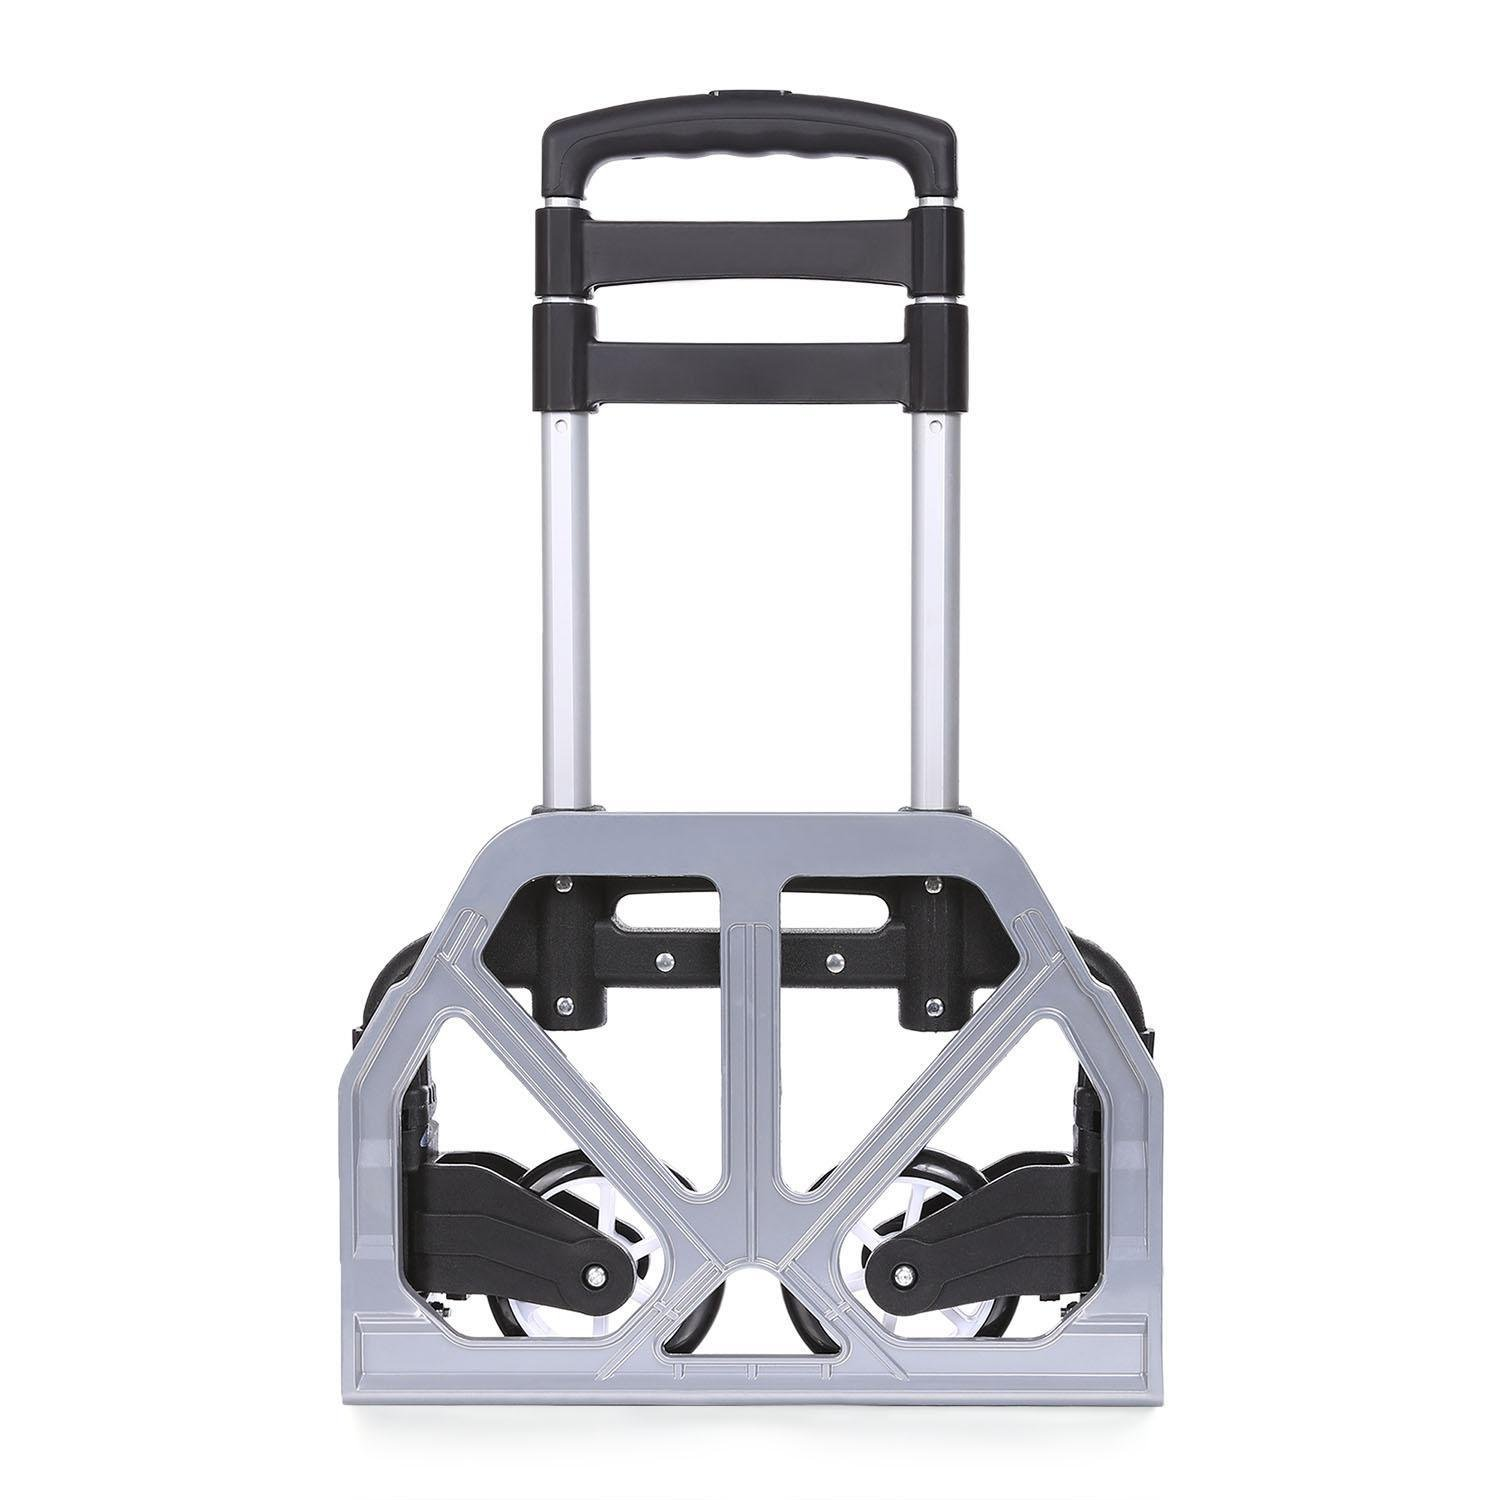 (US Stock) Keland Foldable Lightweight Hand Truck, Portable Aluminum Small Hand Trucks,150lbs Capacity Mini Hand Truck with Arm Handle for Industrial/Travel/Shopping by Keland (Image #6)